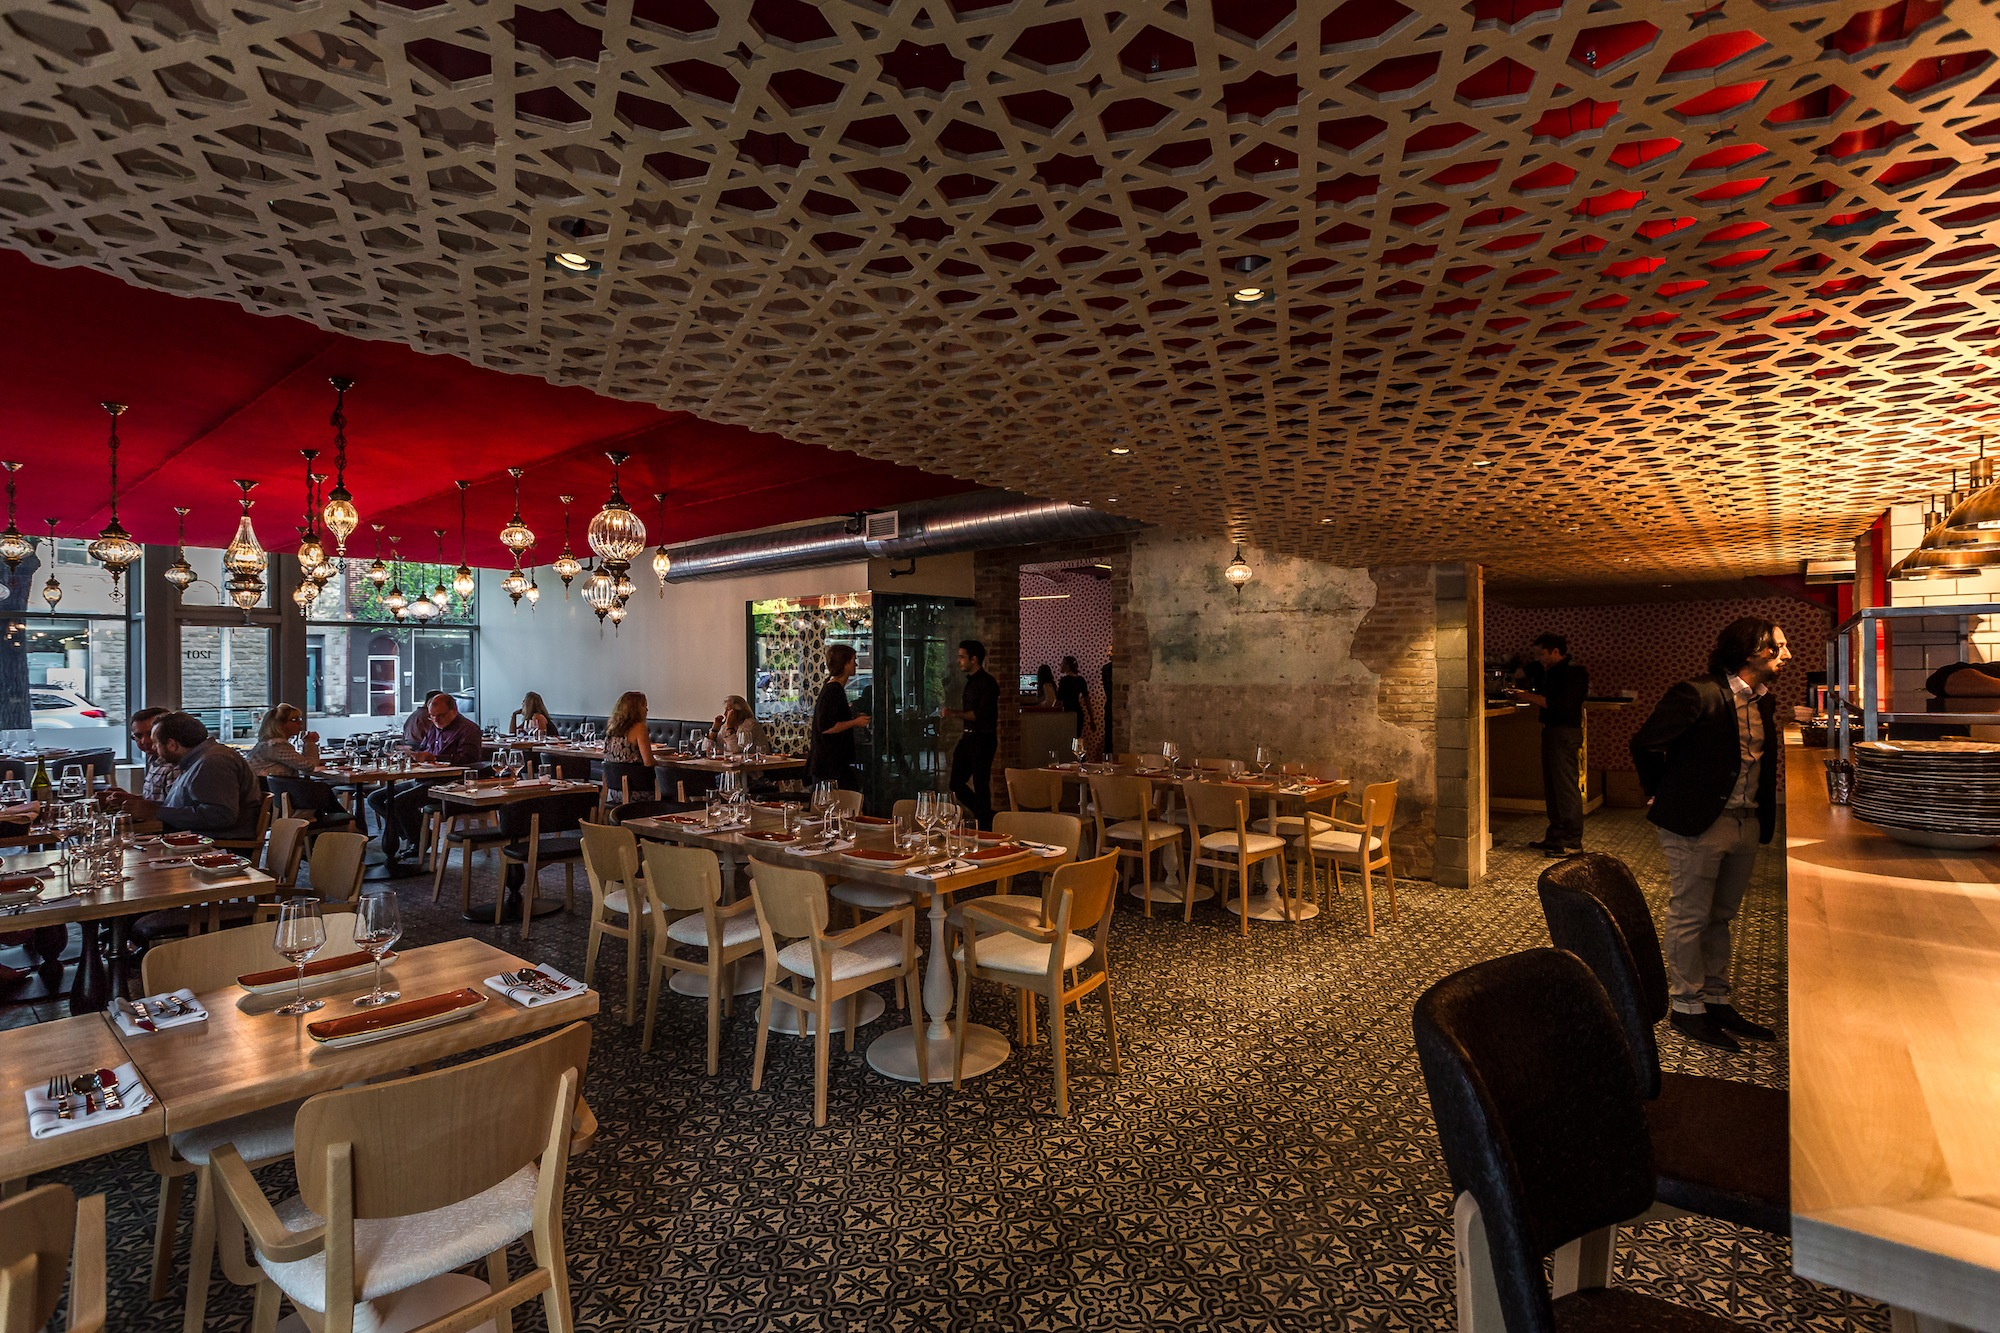 Step Inside the New Damas on Van Horne in Outremont